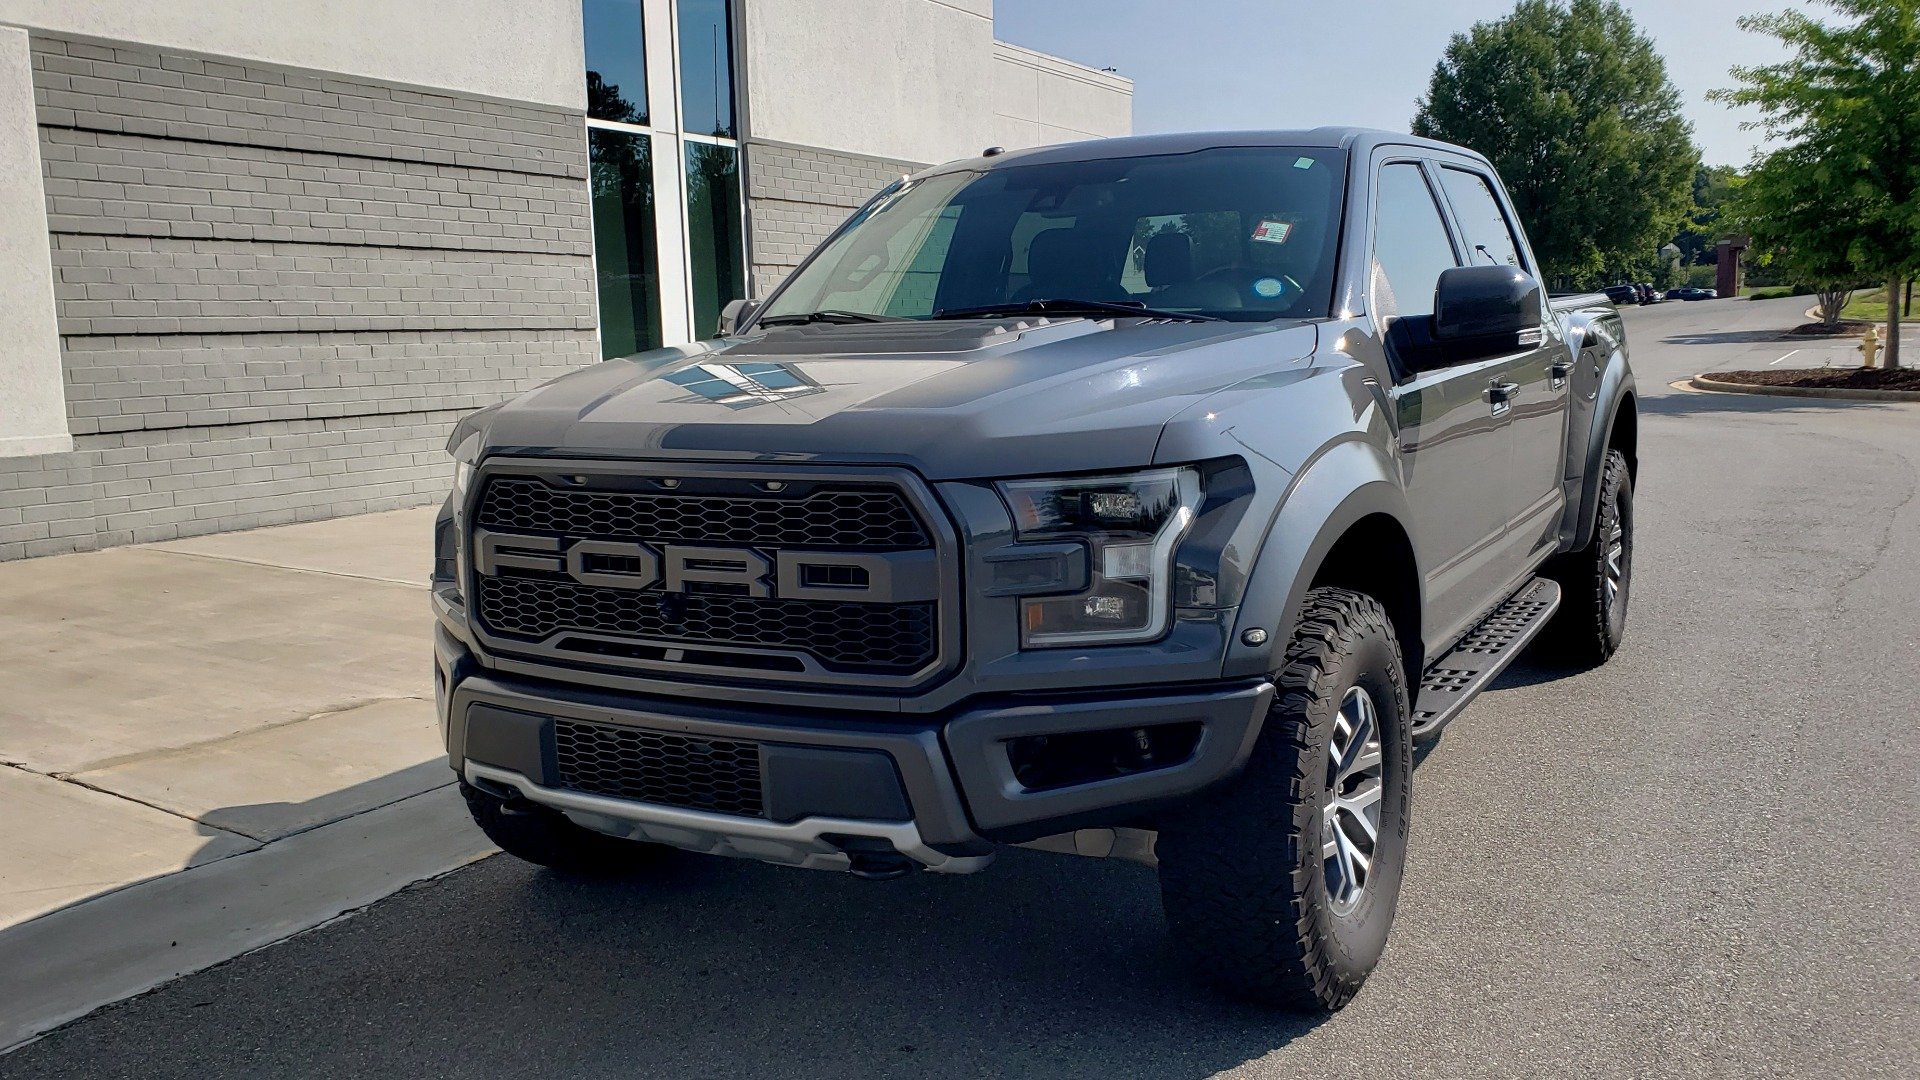 Used 2018 Ford F-150 RAPTOR 4X4 SUPERCREW / NAV / PANO-ROOF / REARVIEW for sale $69,999 at Formula Imports in Charlotte NC 28227 4